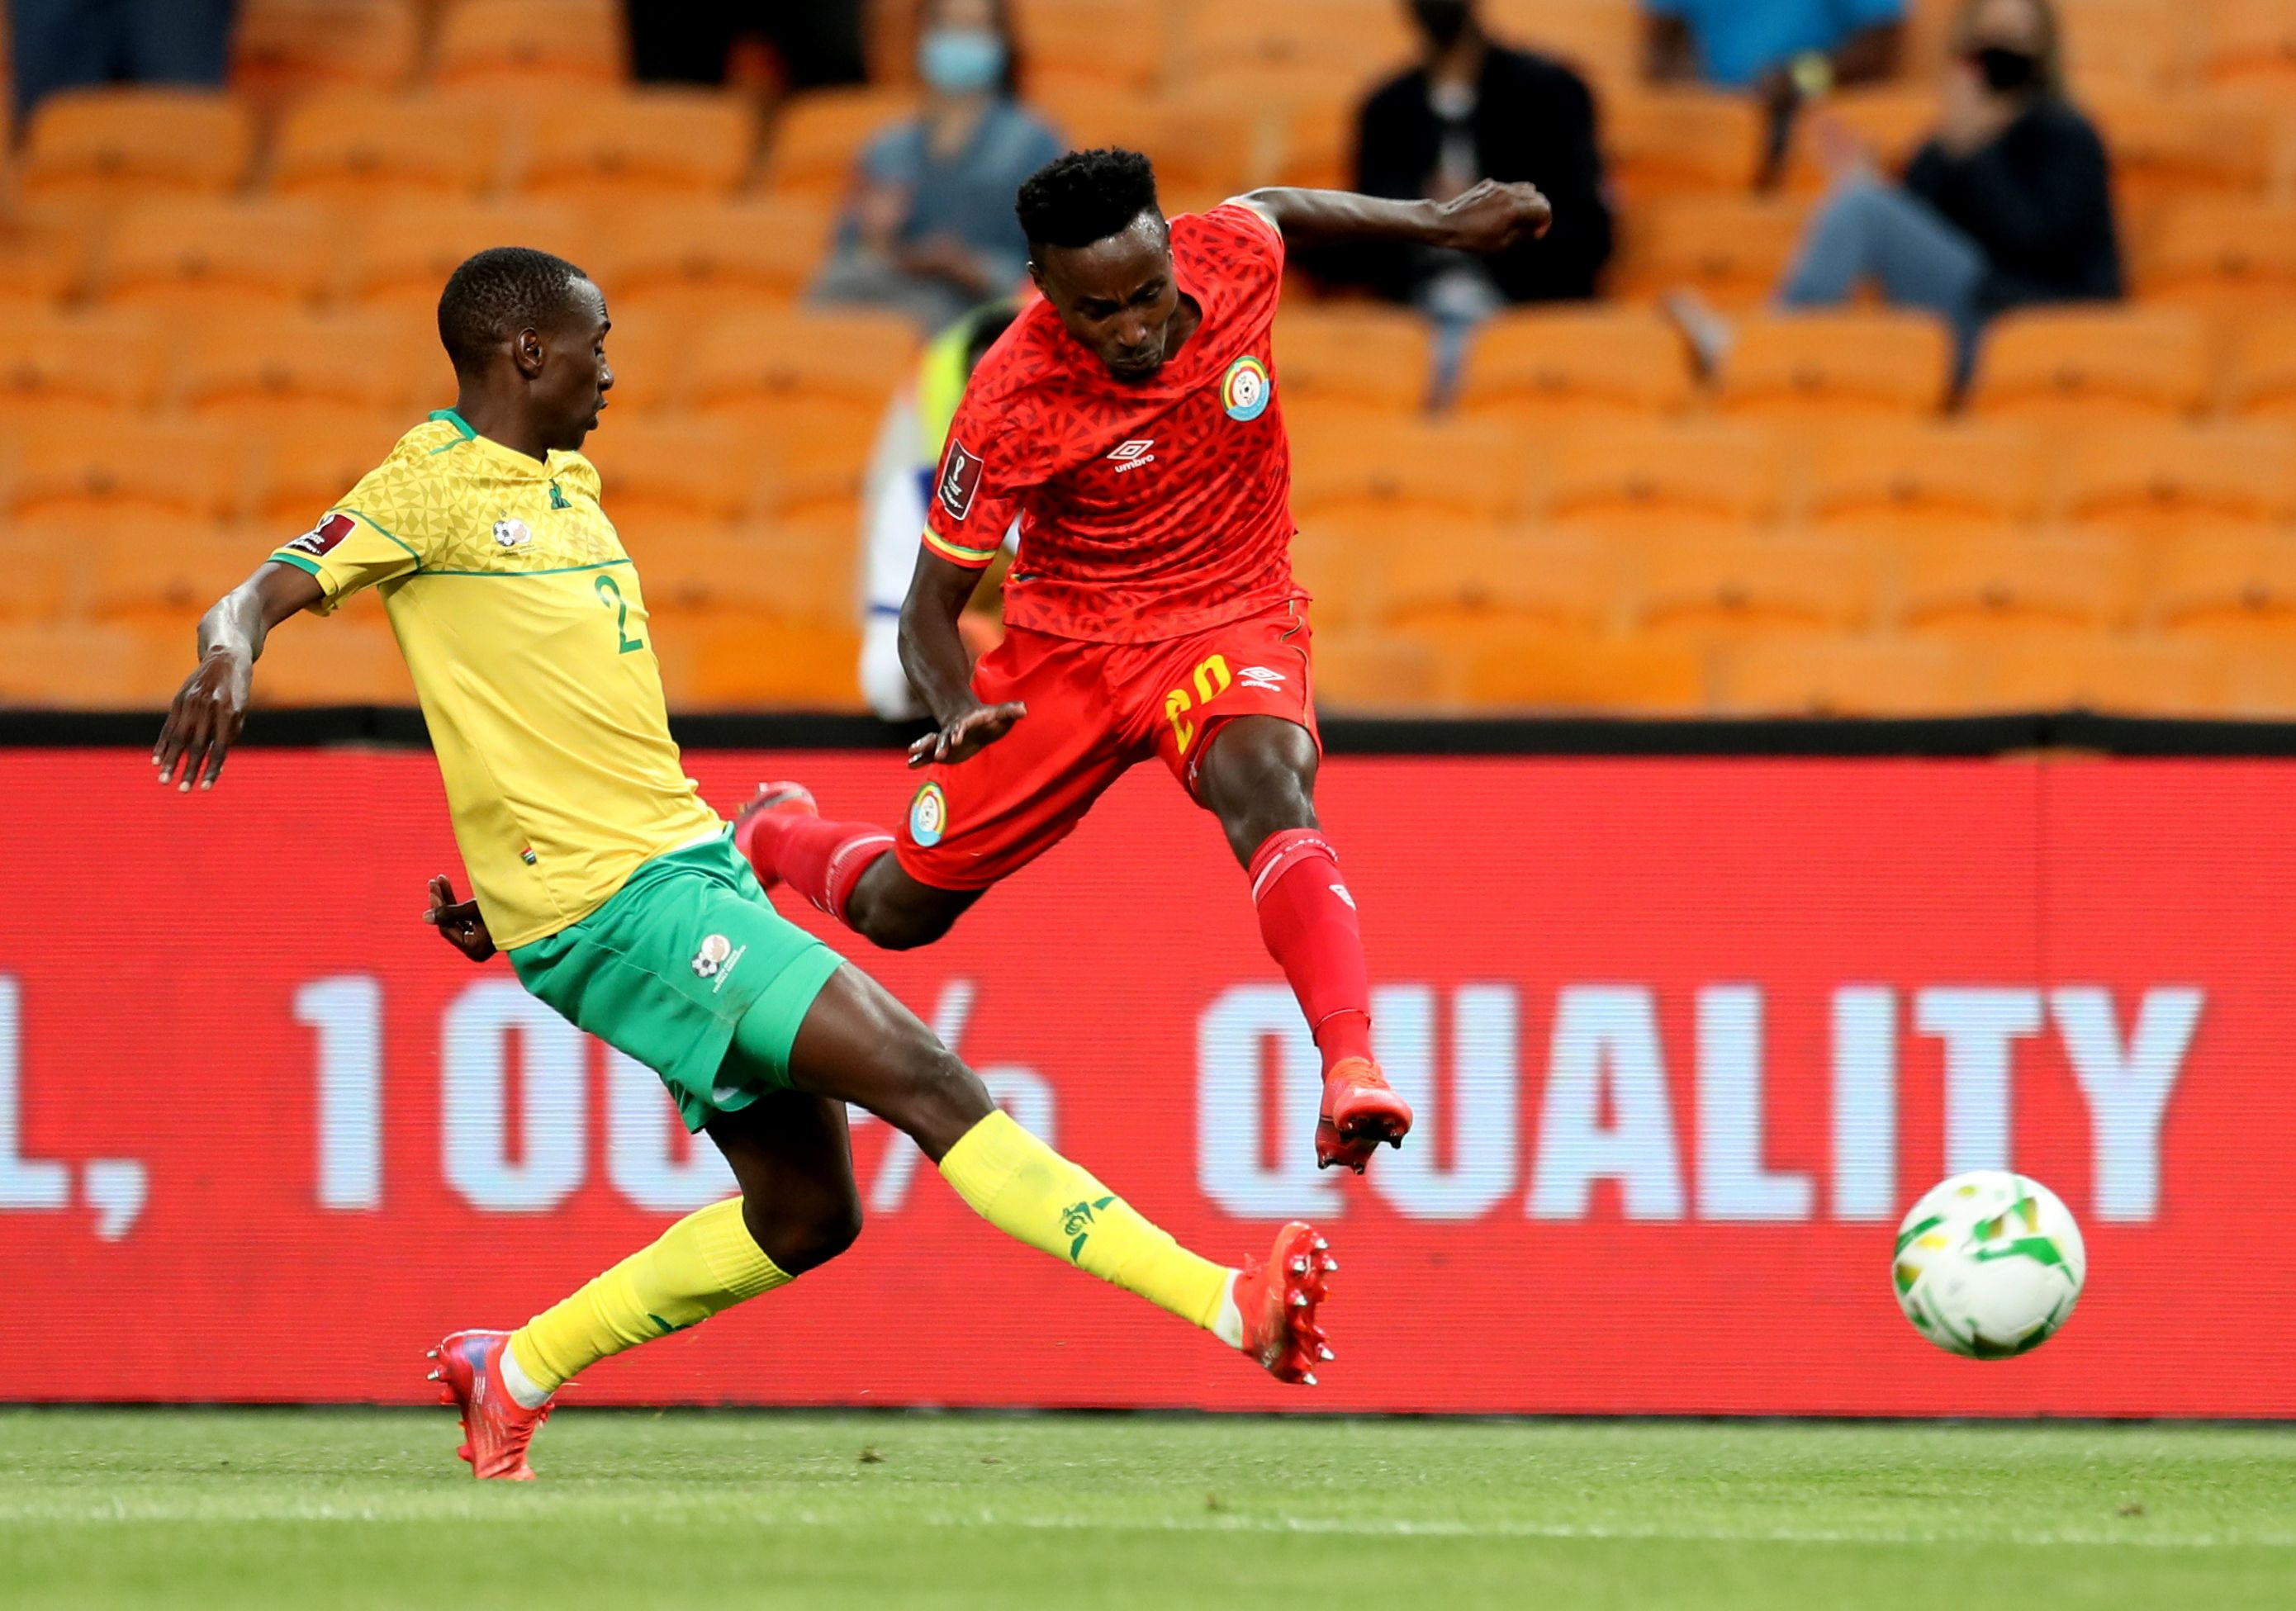 CAF 2022 World Cup Qualifiers: Senegal, Morocco into next round as big names risk elimination